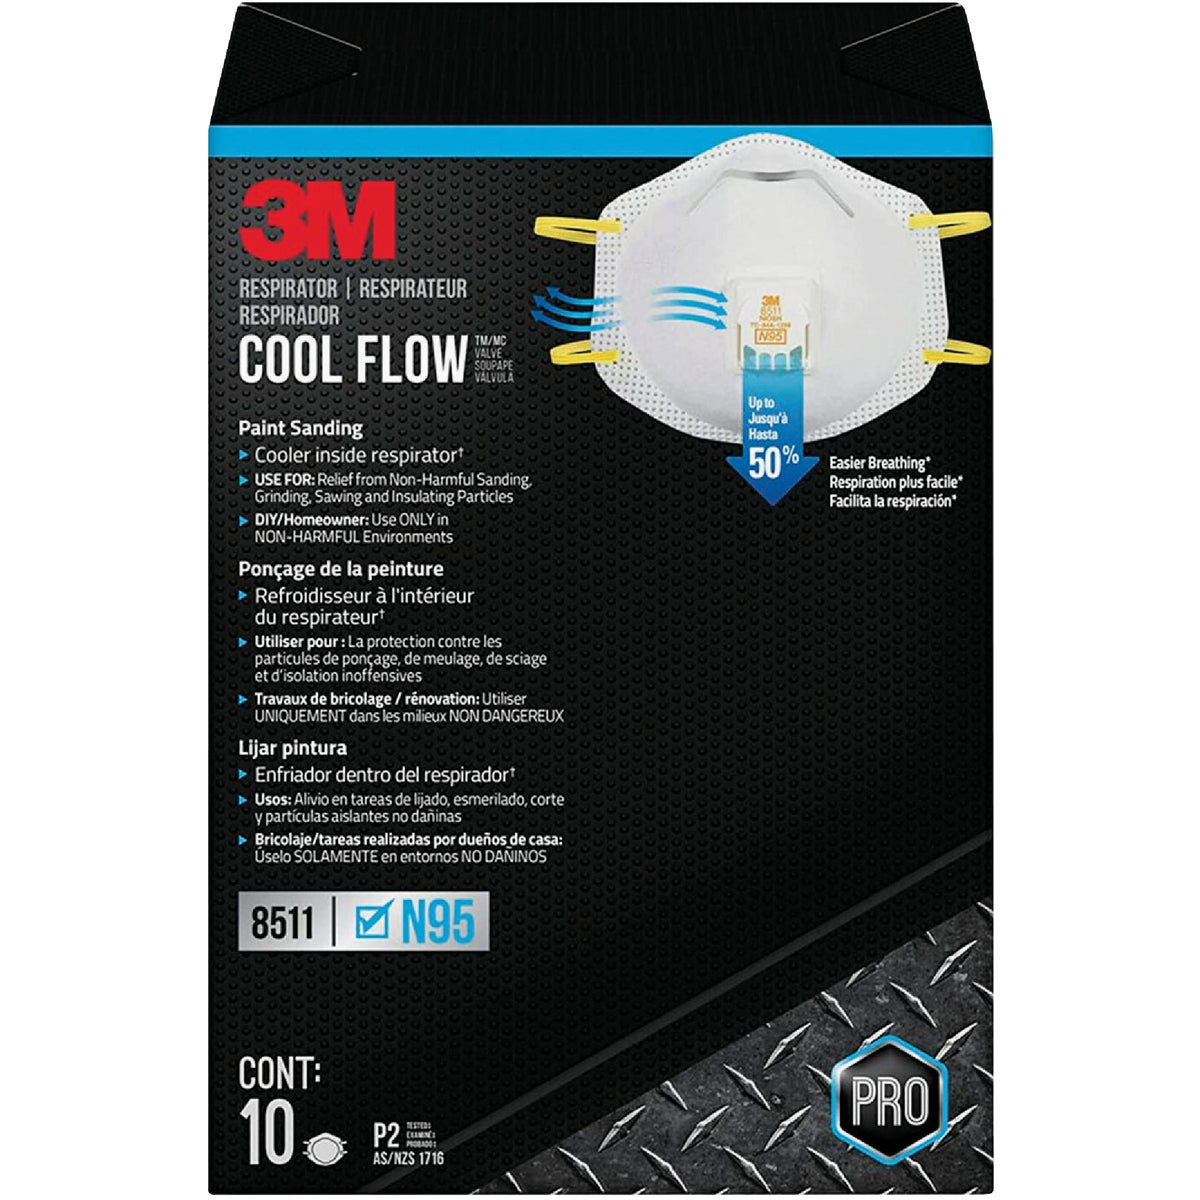 10CT SANDING RESPIRATOR - 8511PB1-A by 3m Co